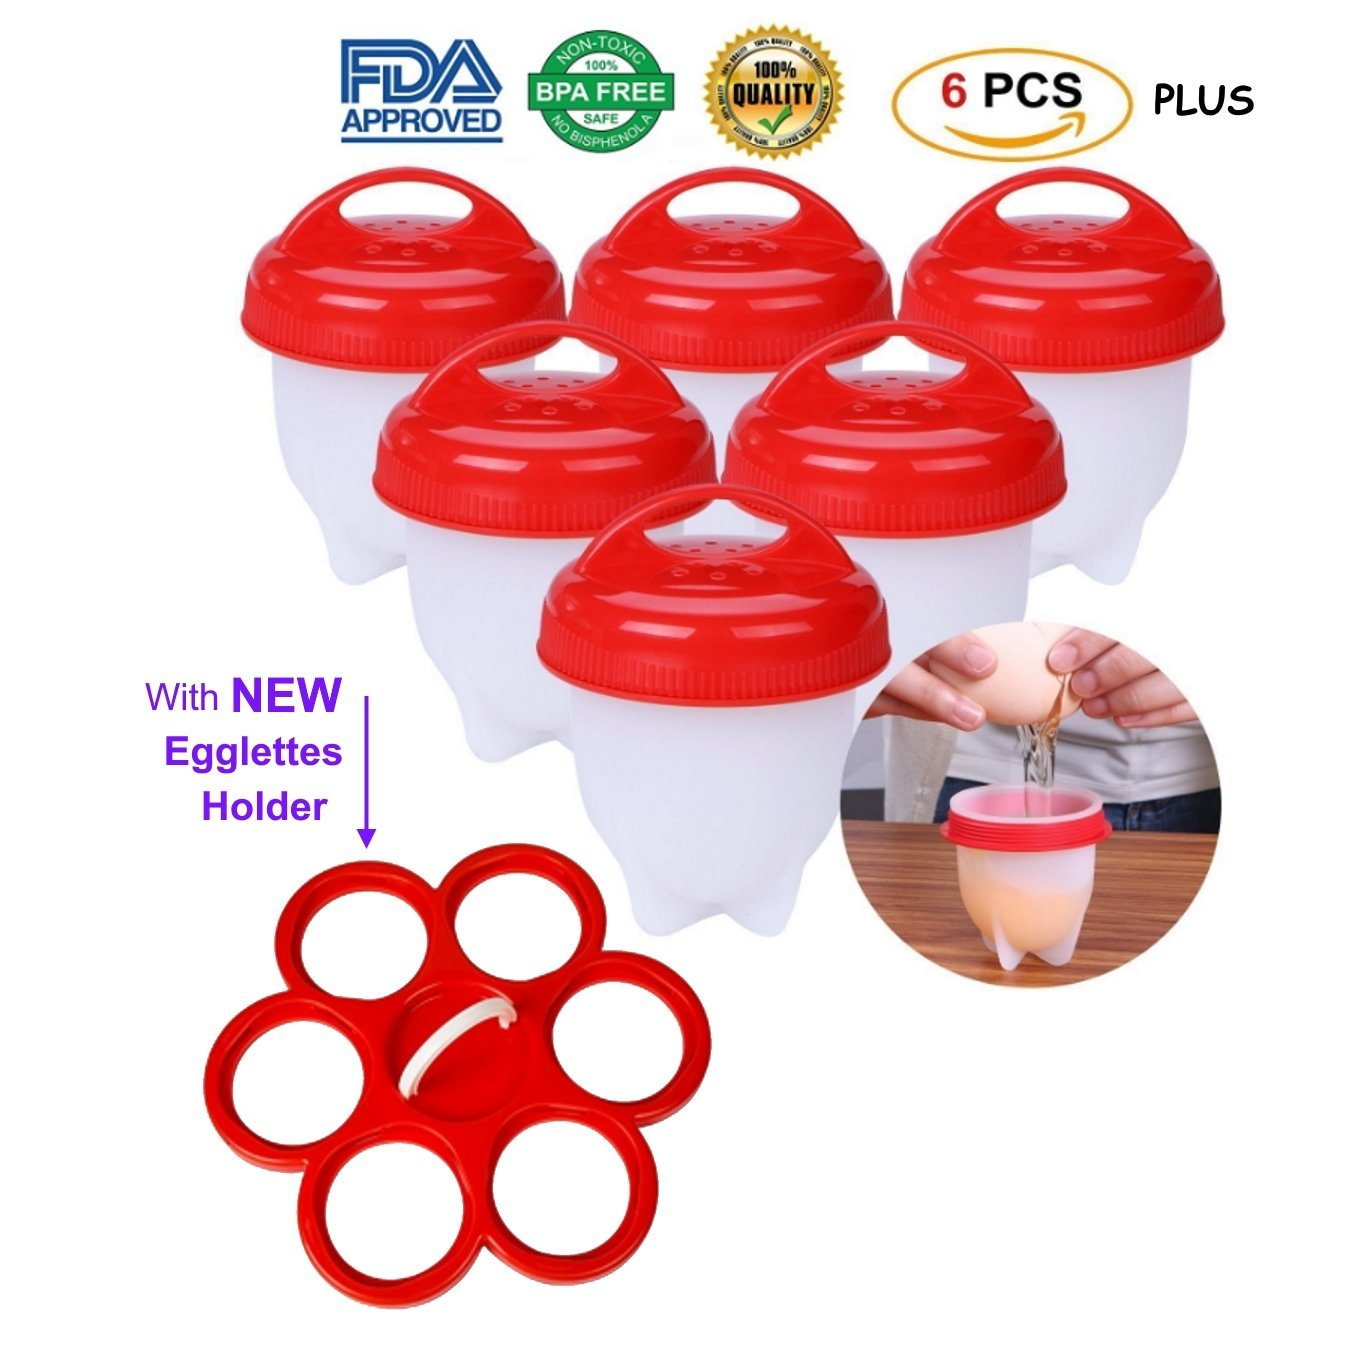 Get Egglettes Silicone Egg Cooker, Hard Boiled Egg maker-cookers-boiler egglette products AS SEEN ON TV, (aka: egglet, eggettes, eglettes, eggletes, eggelettes, egglett, eggless, egglets, eggies)